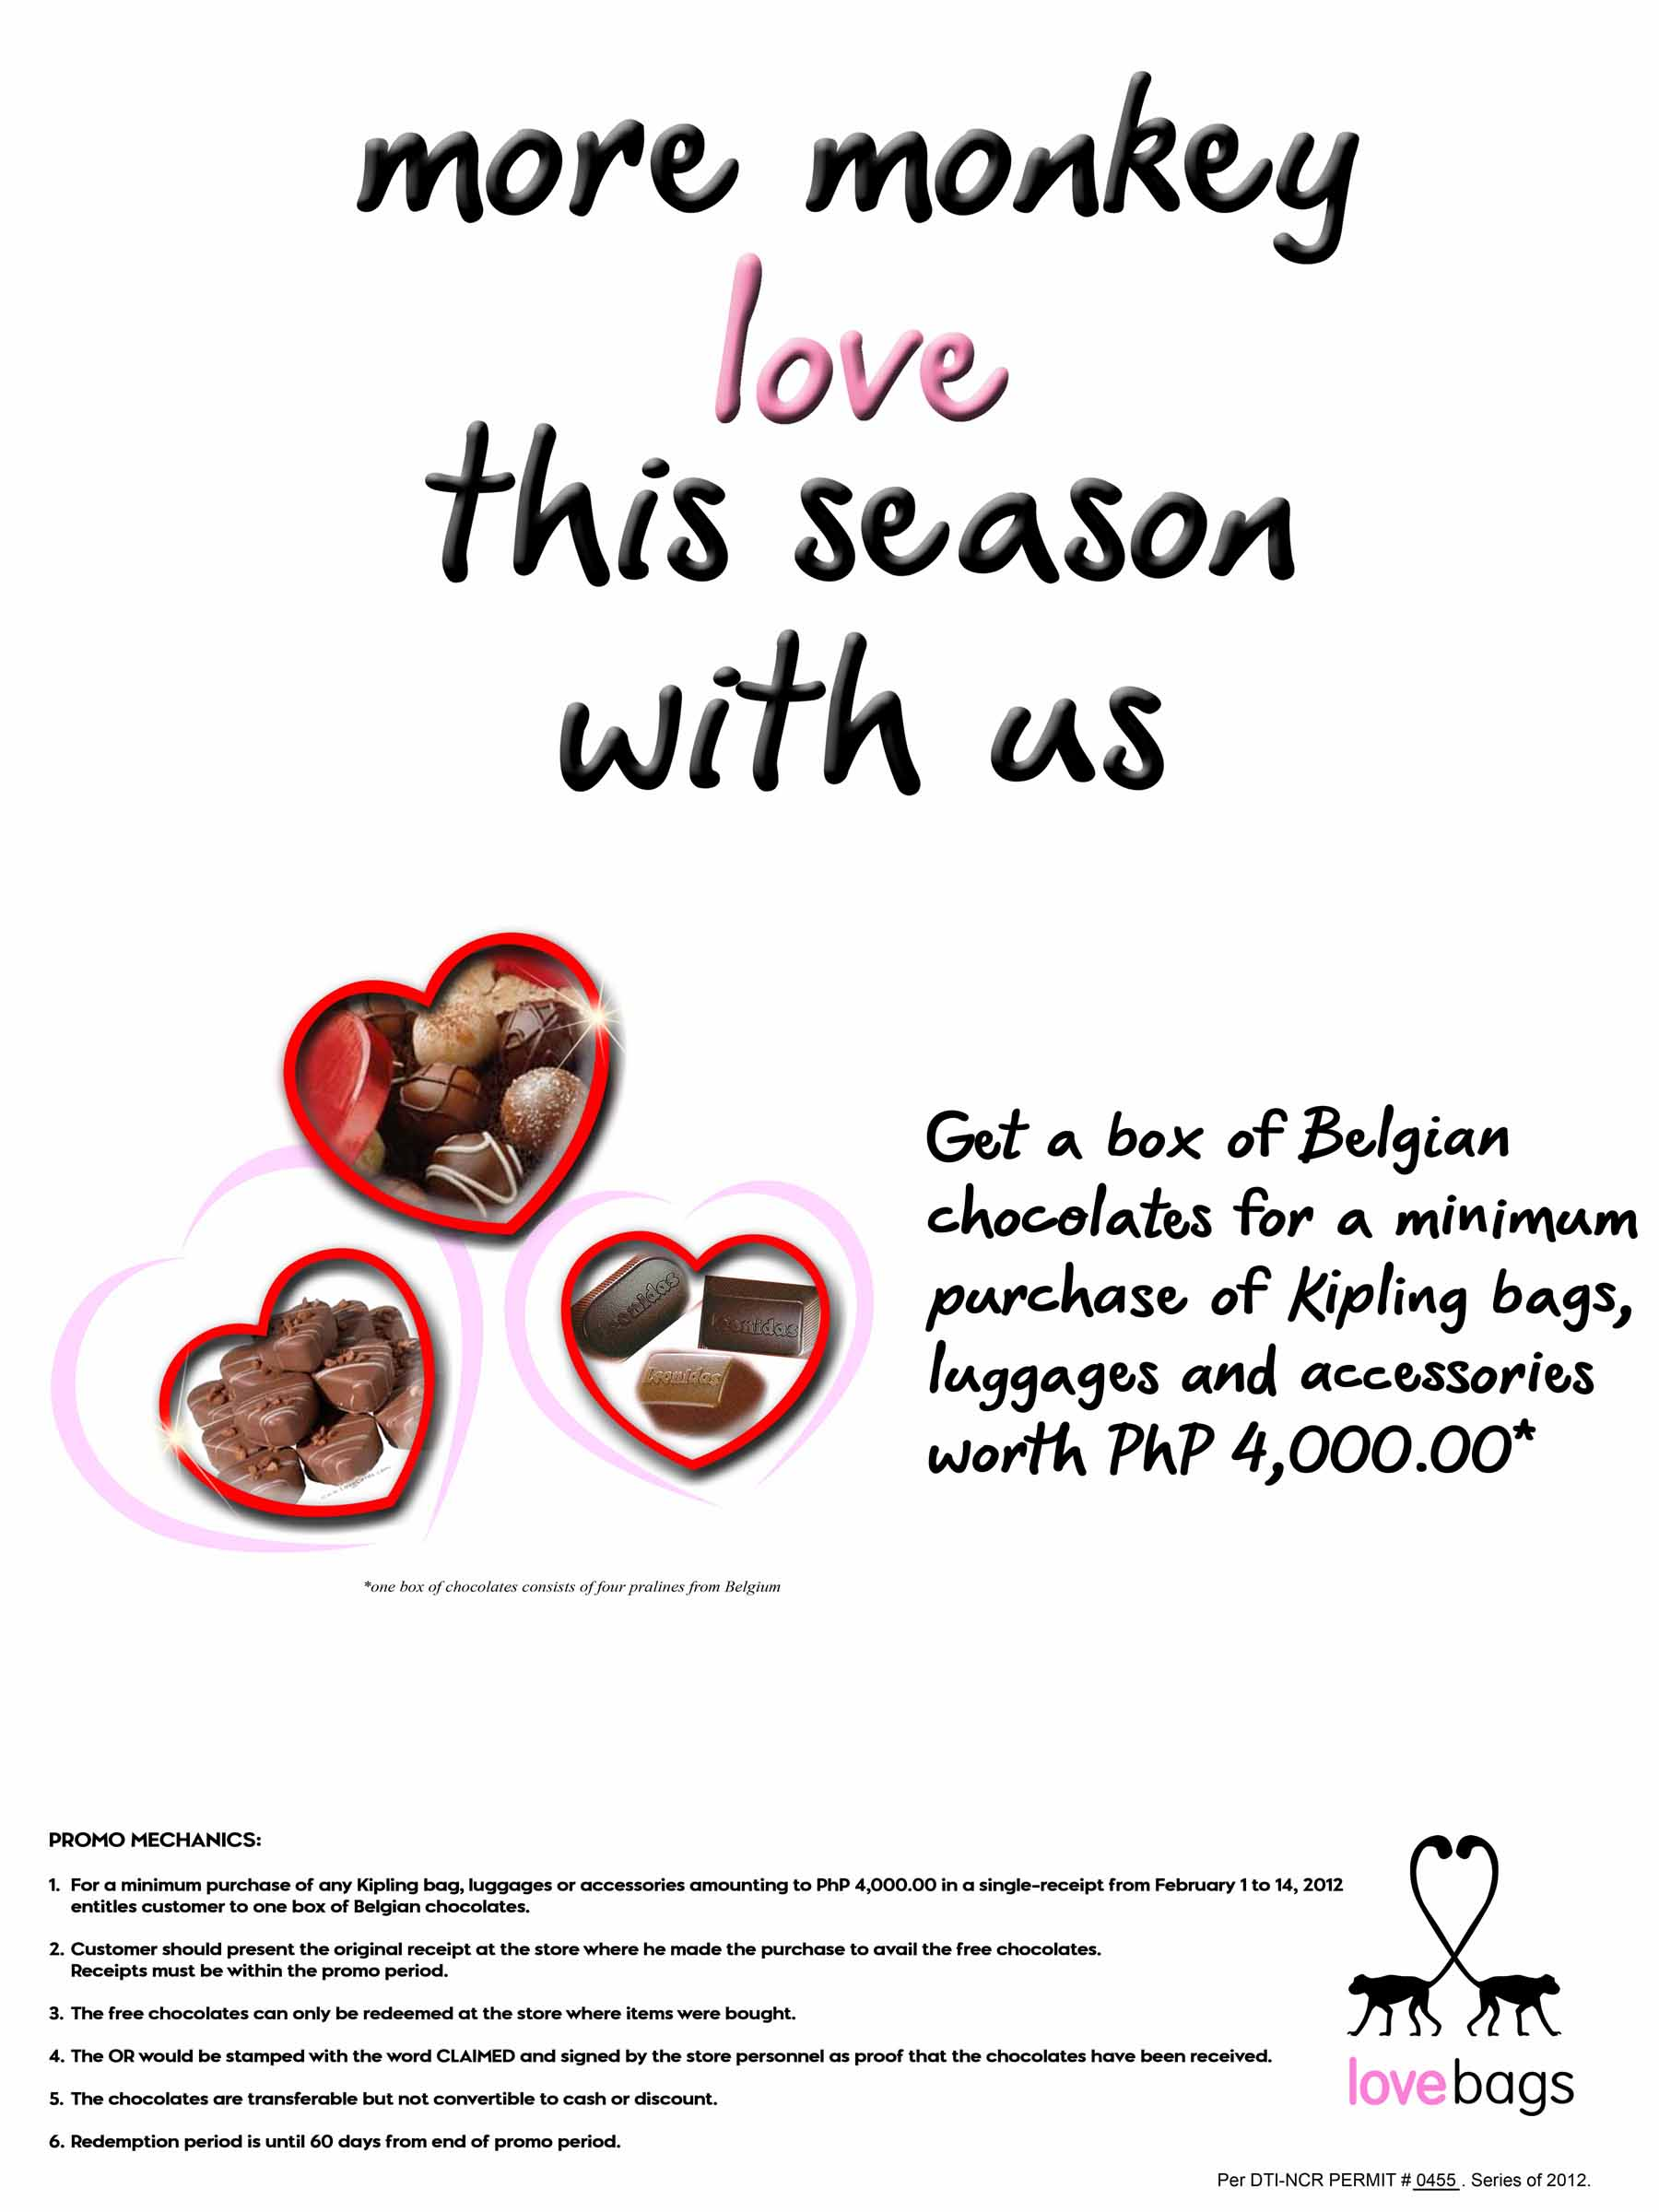 Enjoy a very Belgian Valentine's with Kipling